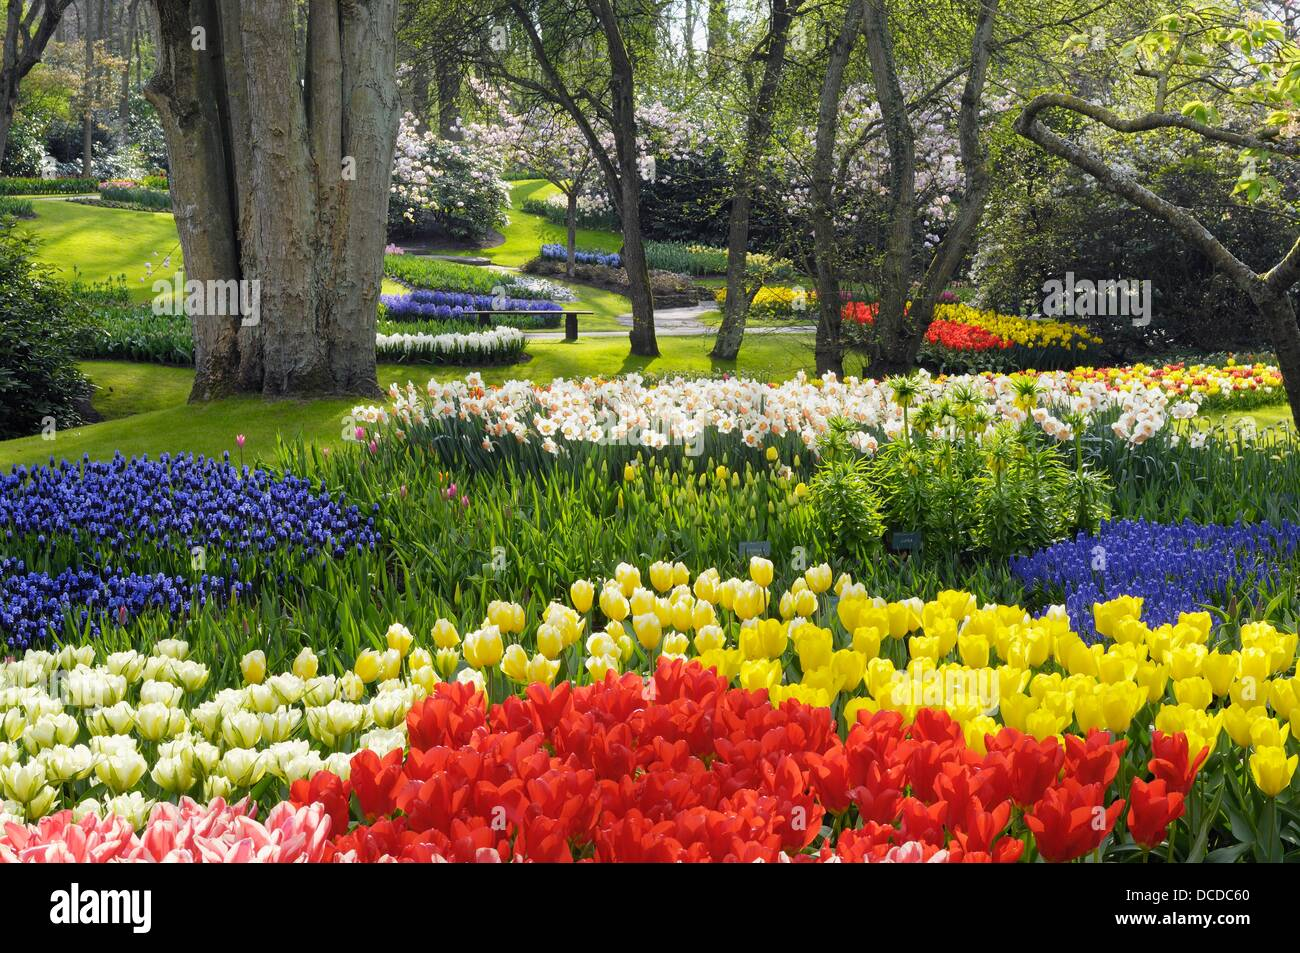 Formal Garden Design With Springtime Flowerbeds Of Tulips, Daffodils And  Hyacinths, Keukenhof Gardens, Lisse, Holland